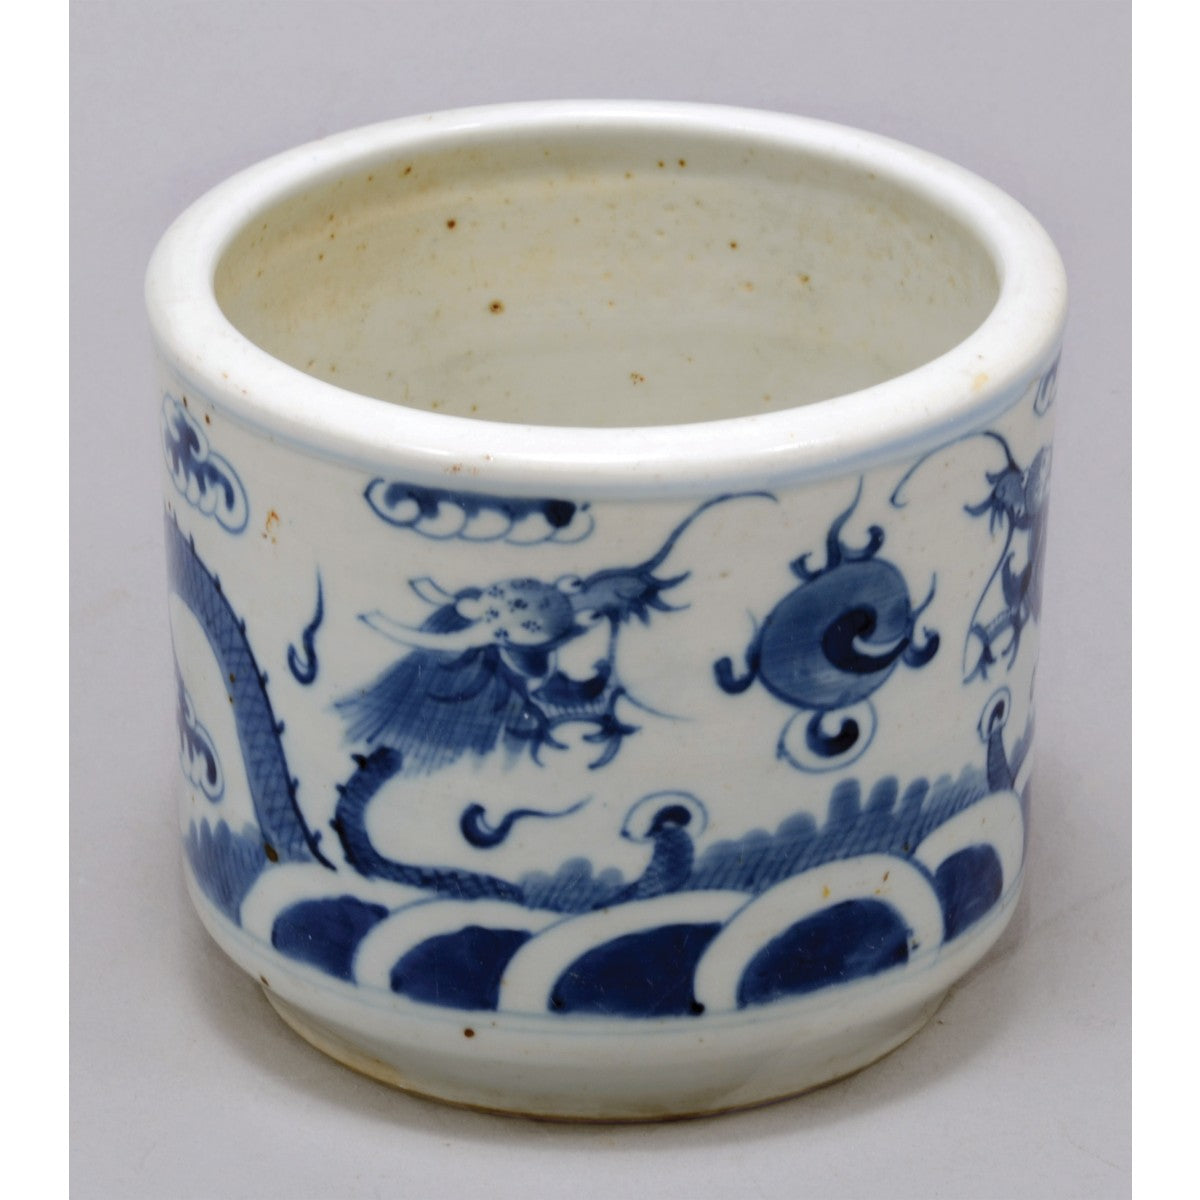 Antique Chinese Porcelain Jardiniere - Blue and White